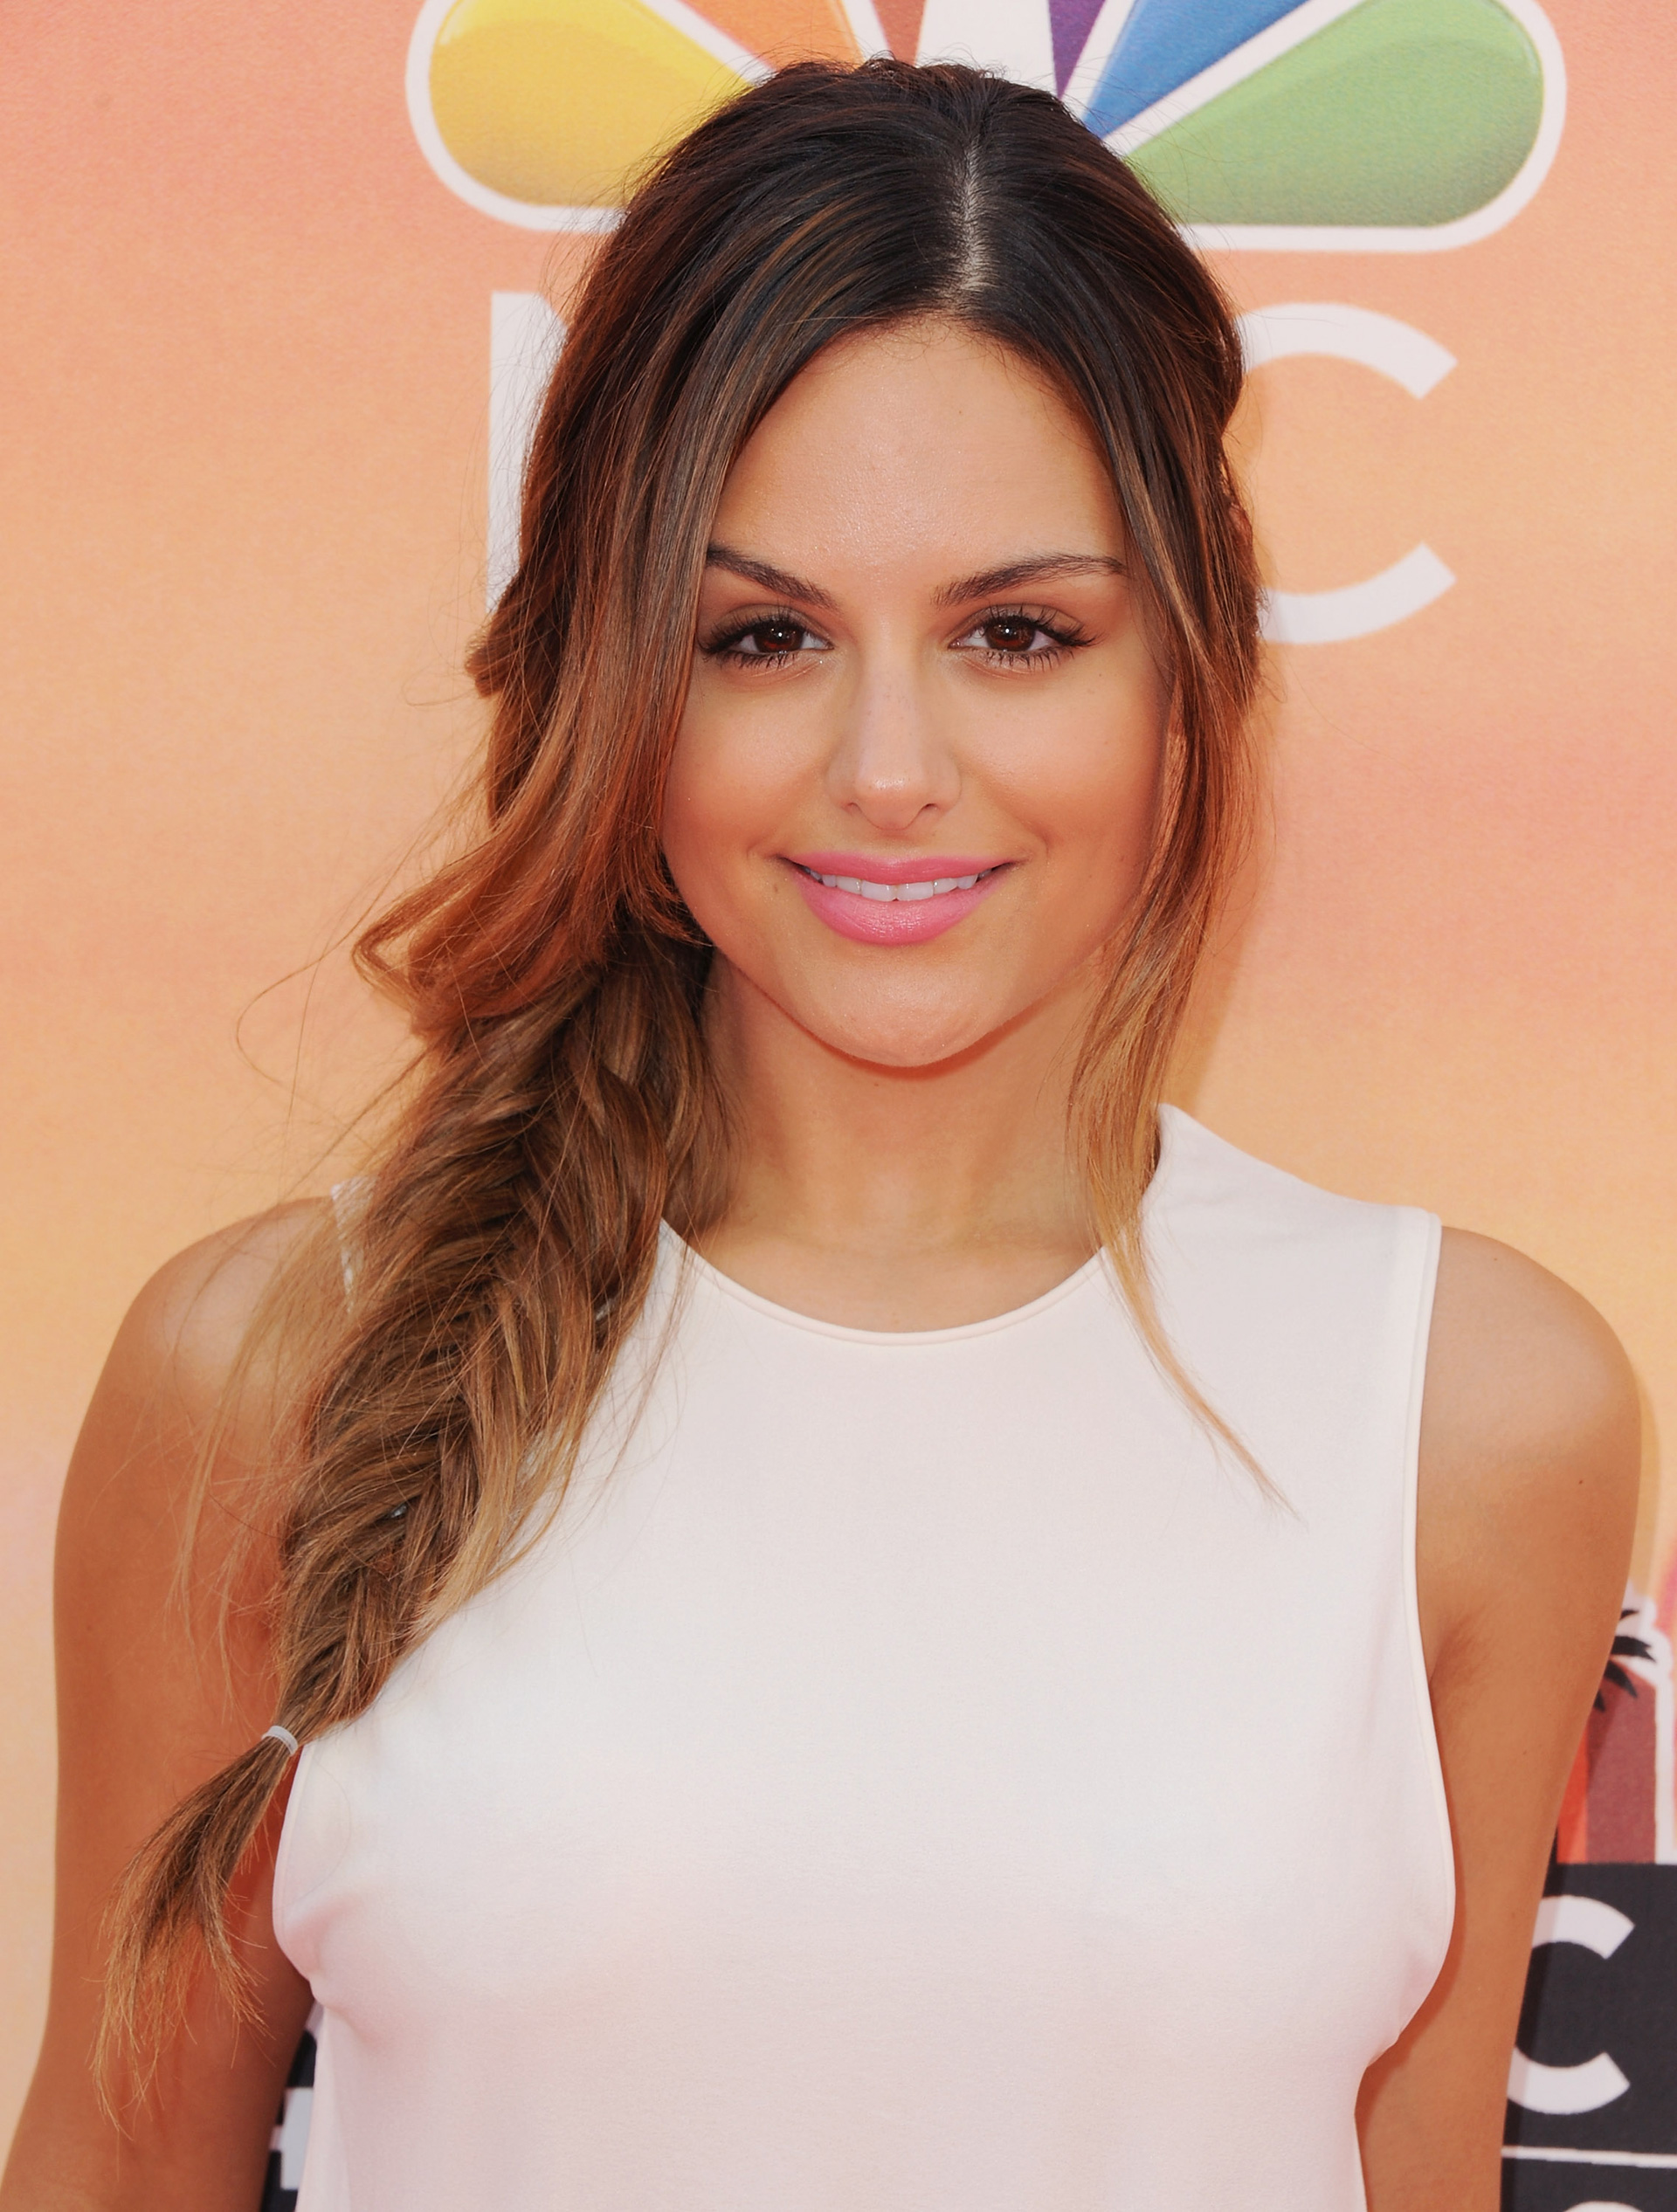 Pia Toscano at the 2014 iHeartRadio Music Awards